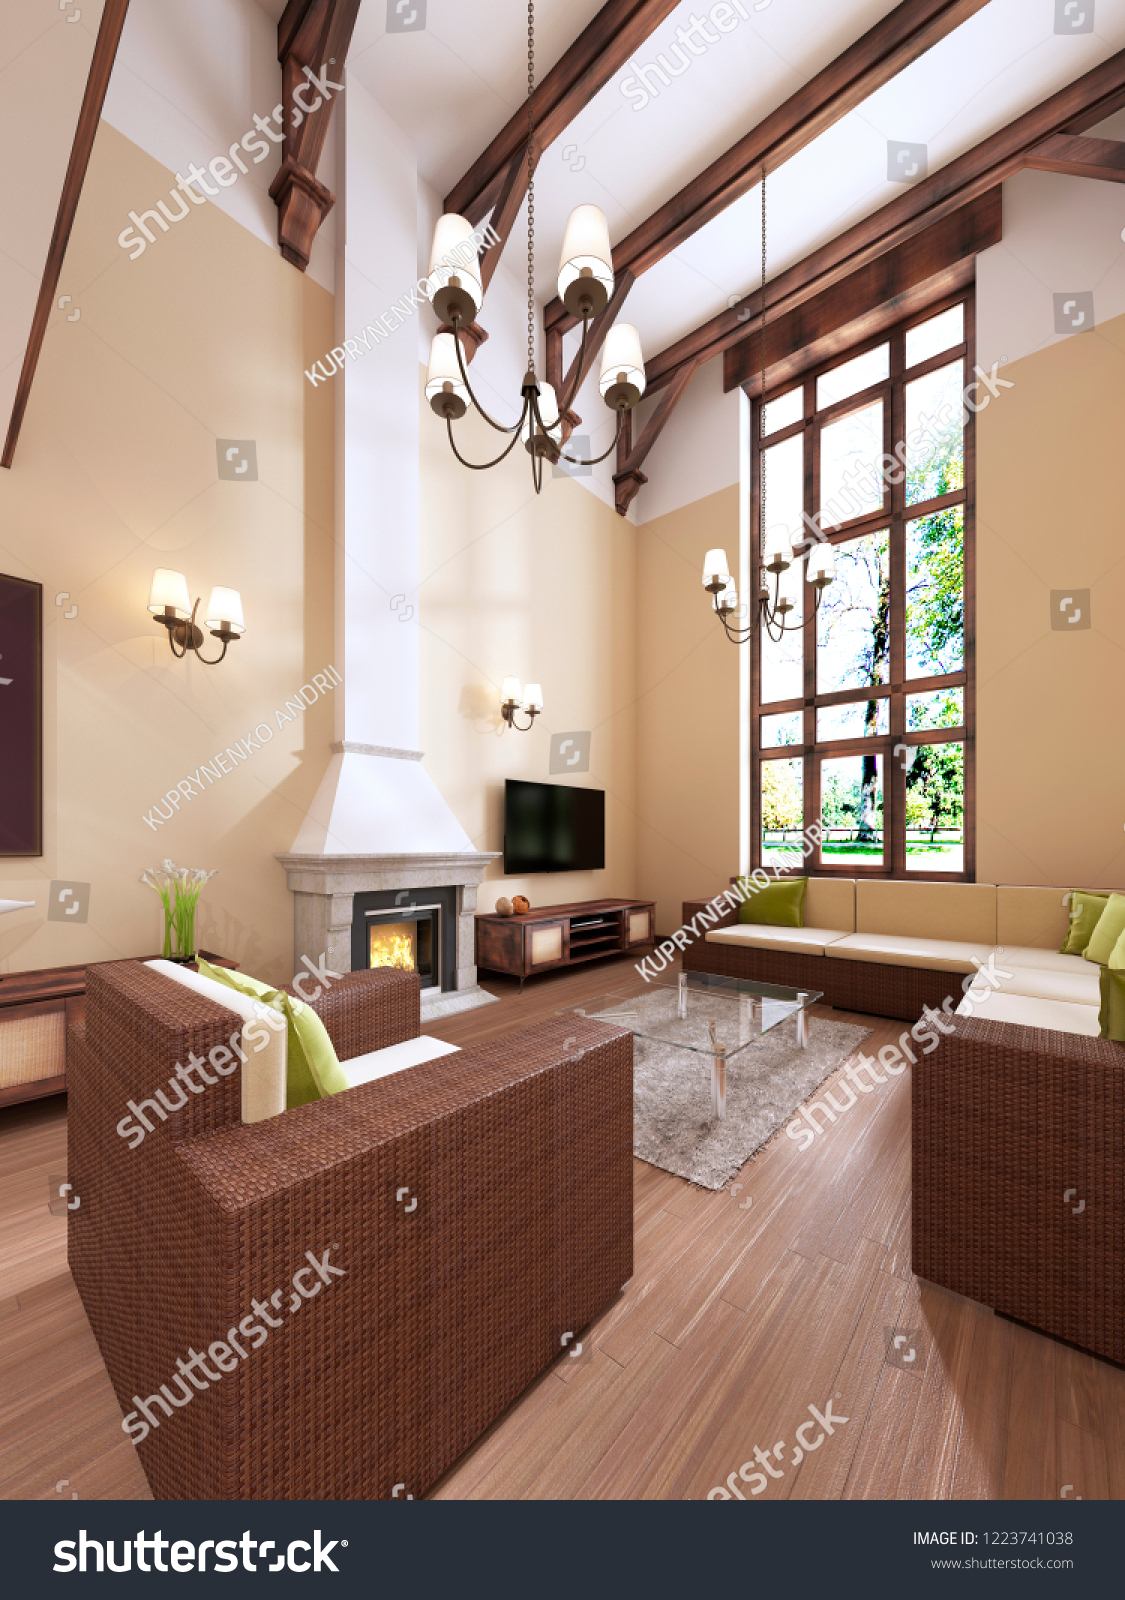 The interior is modern english style with a fireplace high ceilings with wooden beams